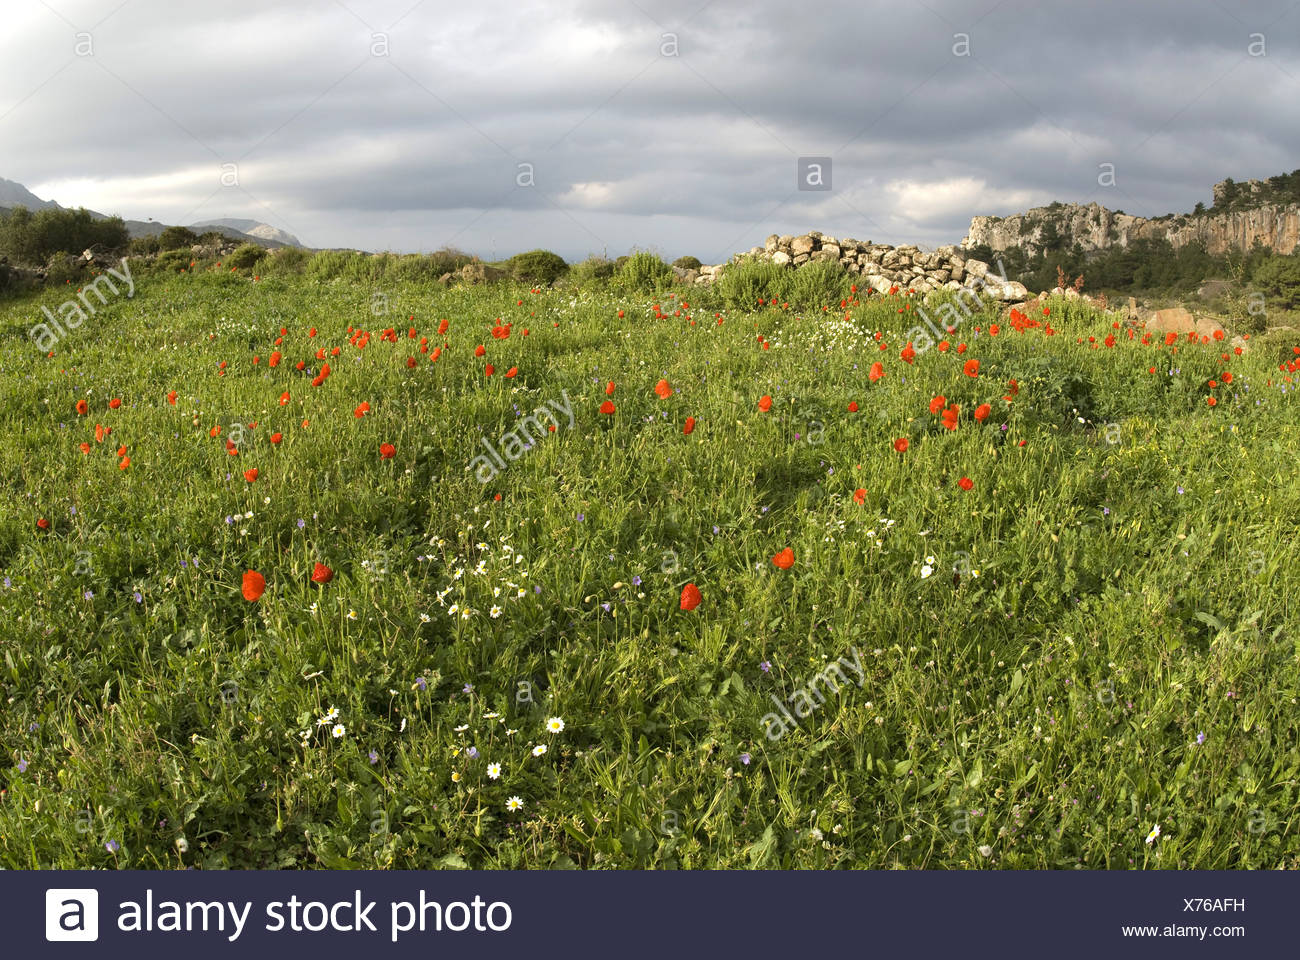 common poppy, corn poppy, red poppy (Papaver rhoeas), poppy field on Karpathos, Greece Stock Photo